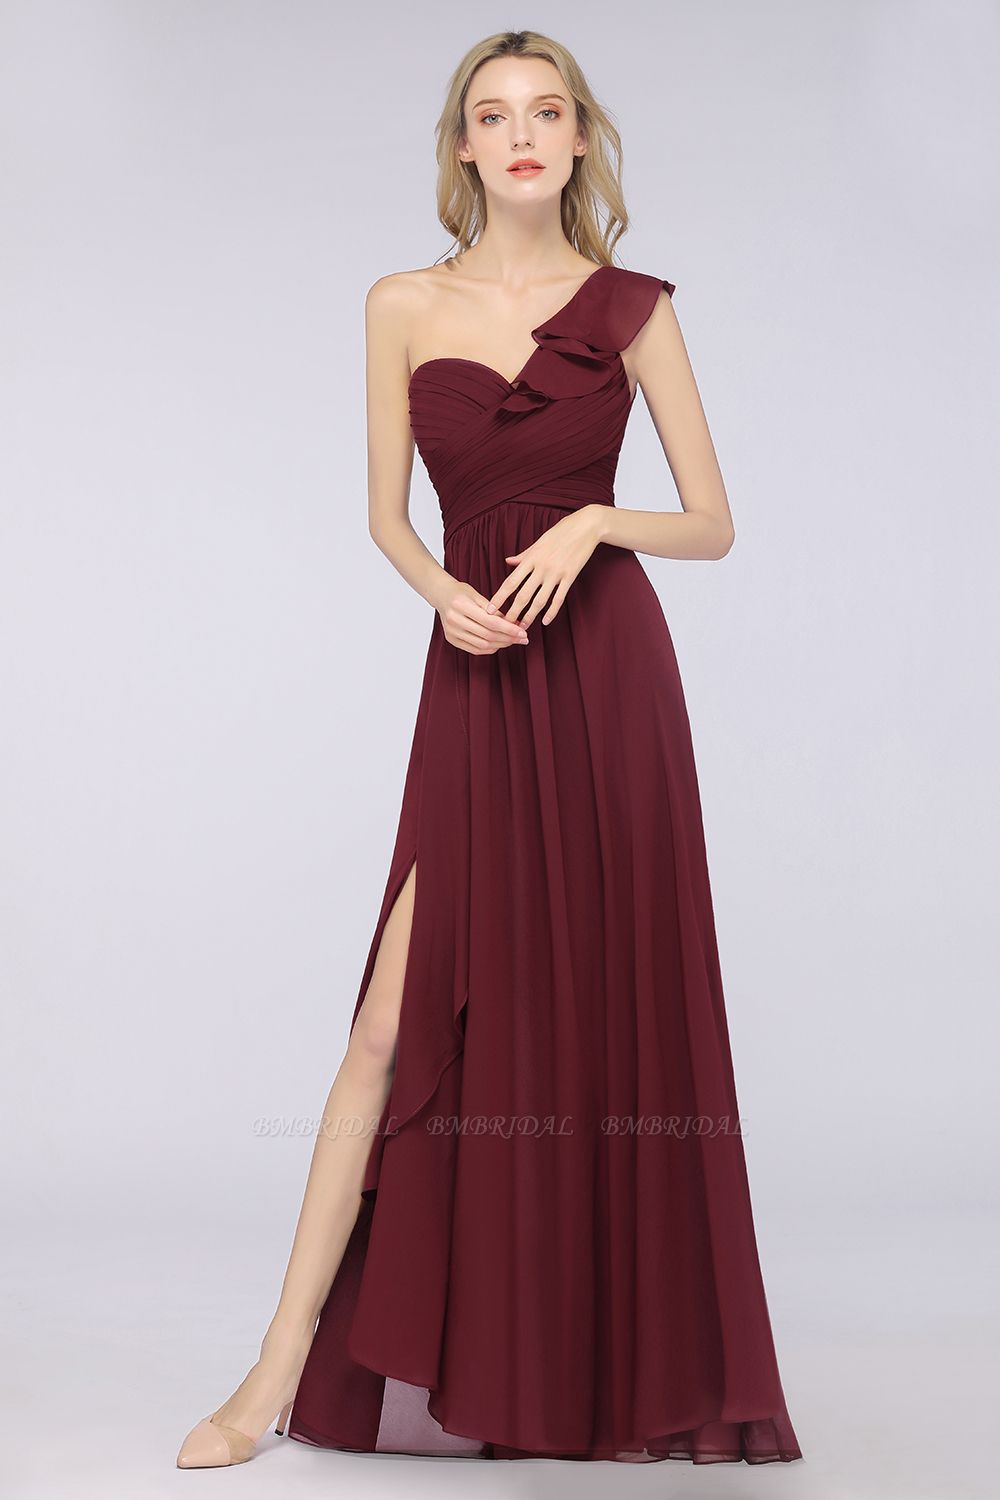 BMbridal Gorgeous Sweetheart Ruffle Burgundy Chiffon Bridesmaid Dress With One-shoulder